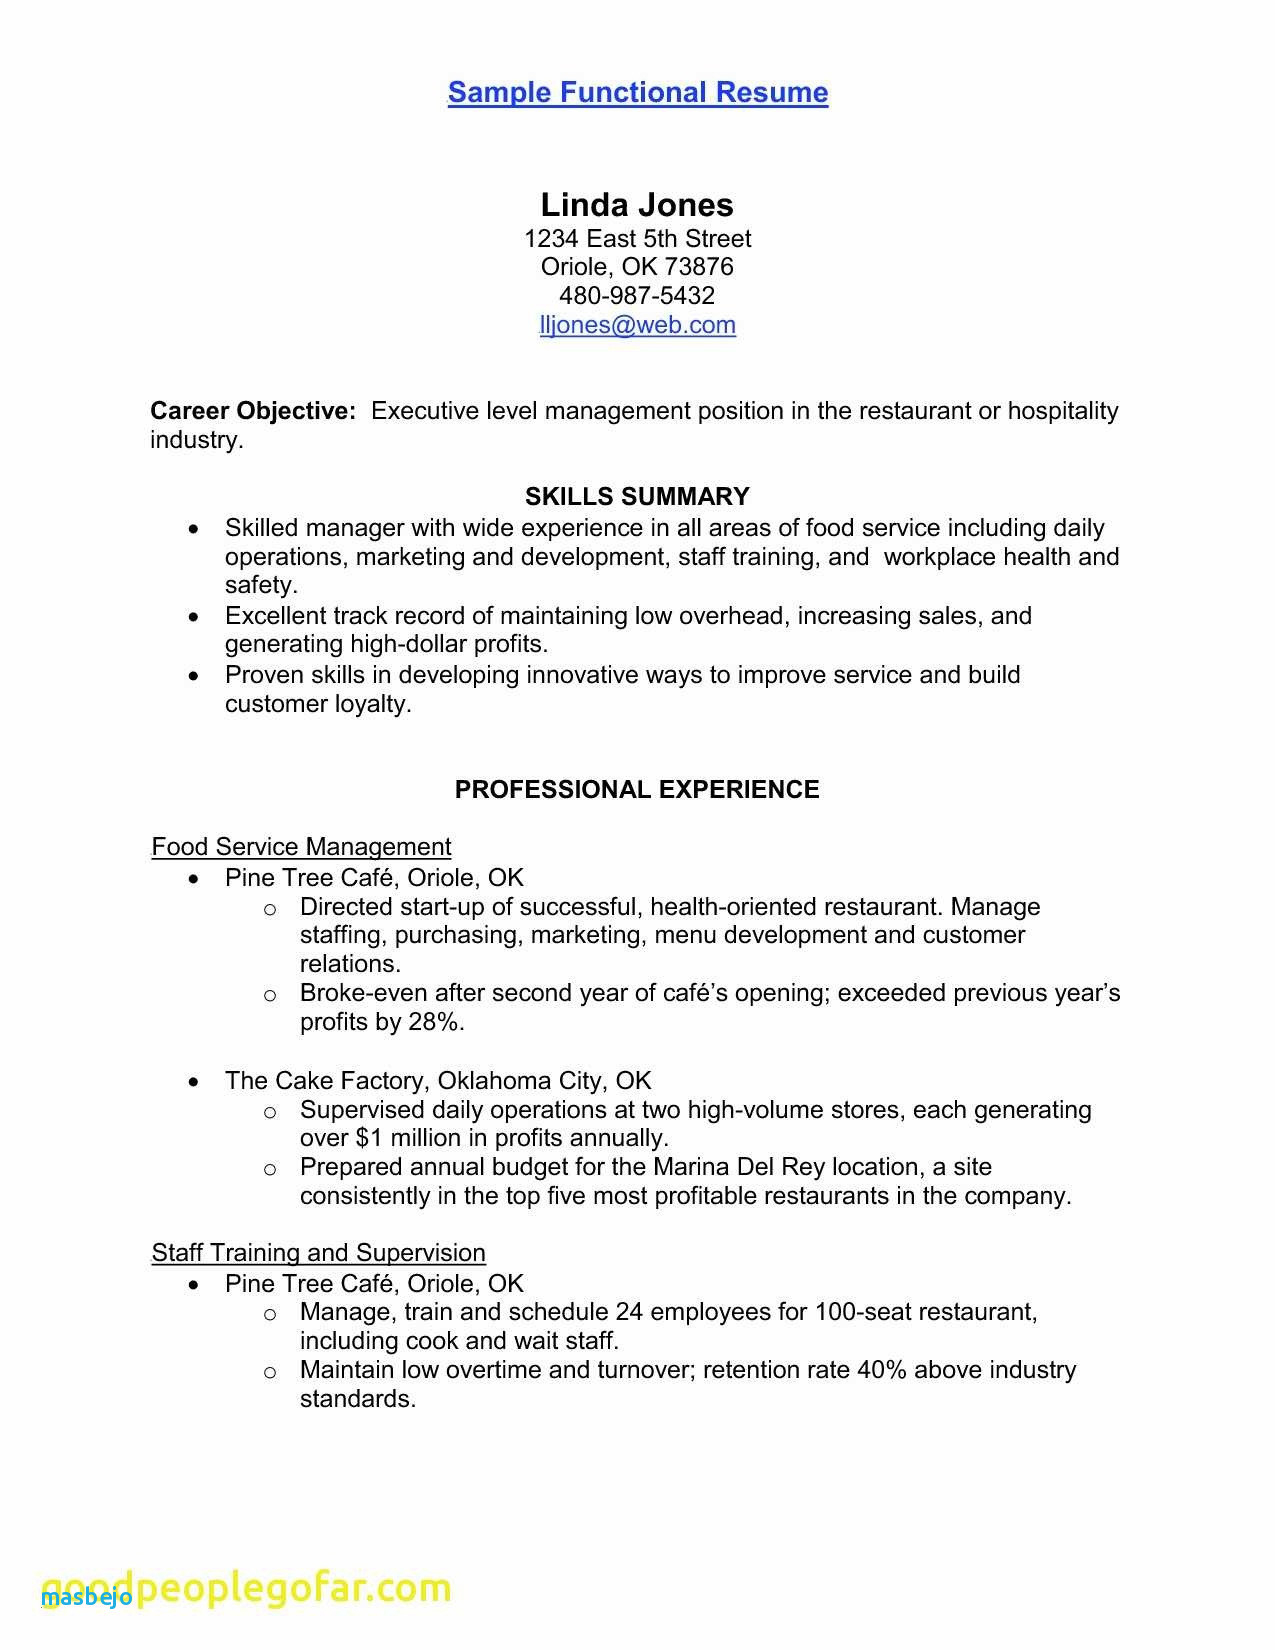 Pharmacist Resume Template - Pharmacy Resume Example Resume